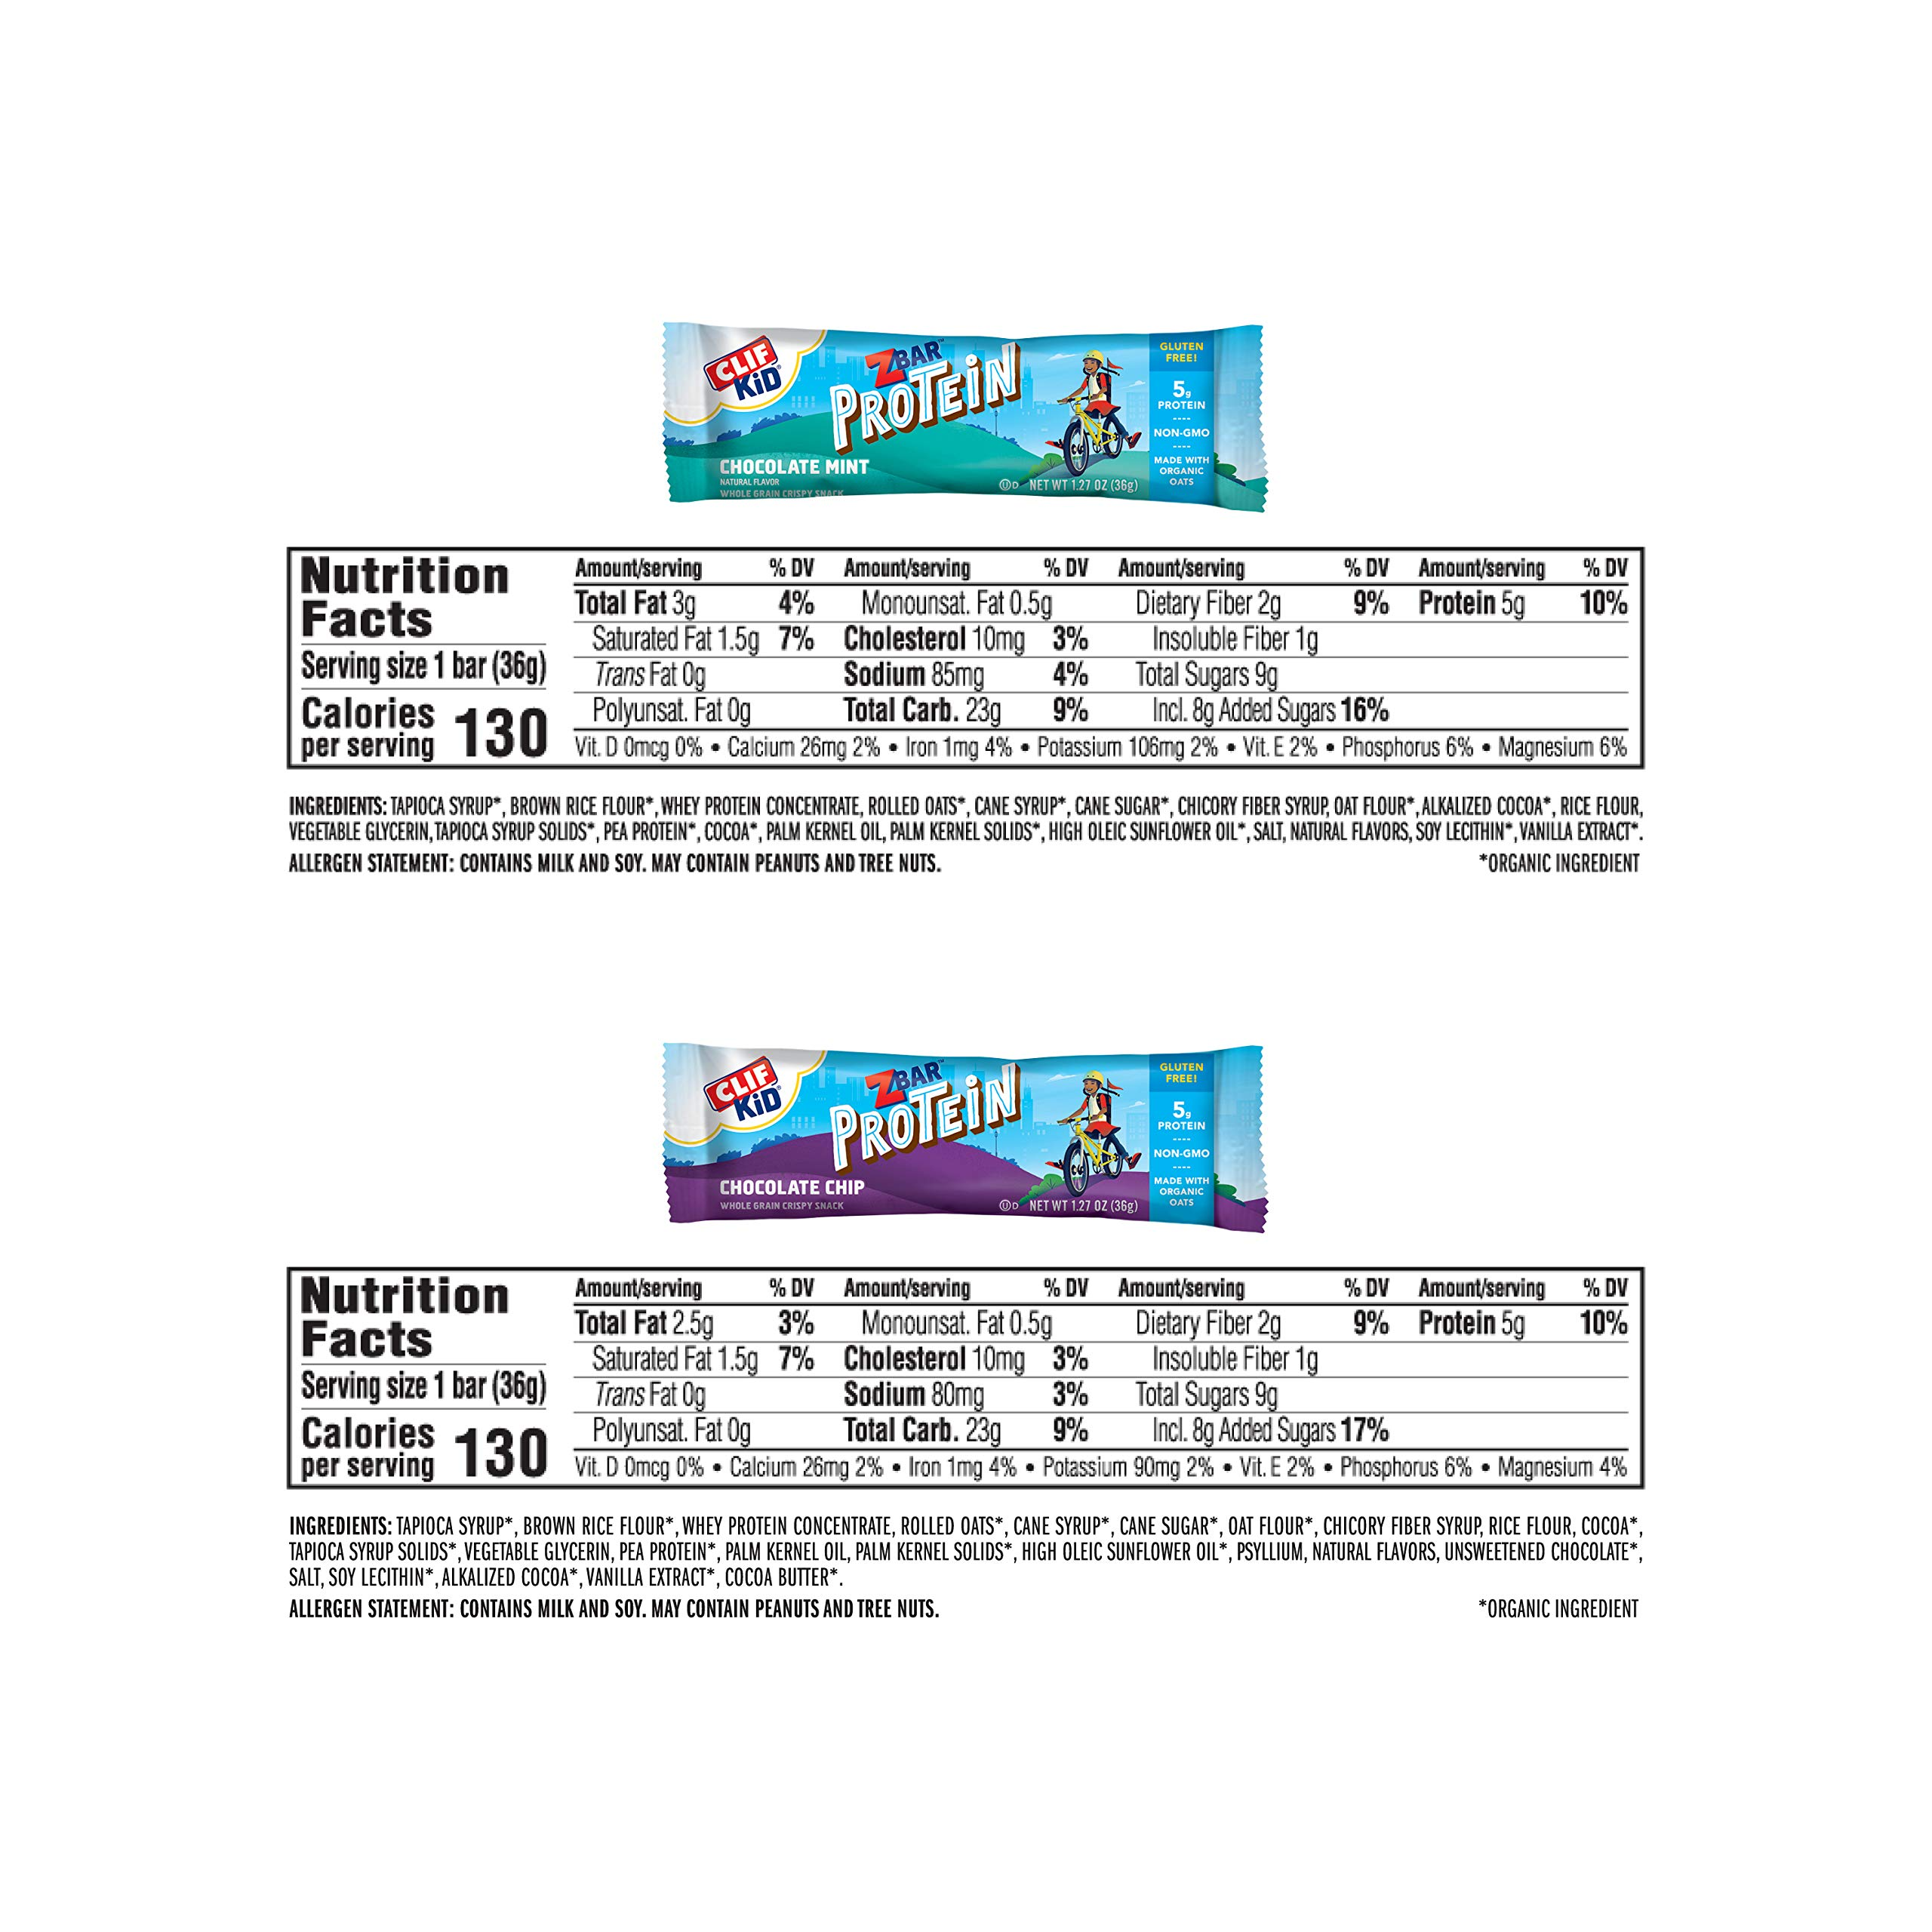 Clif Kid ZBAR - Organic Energy Bars - Value Pack - (1.27 Ounce Snack Bars, 36 Count) by Clif Bar (Image #6)